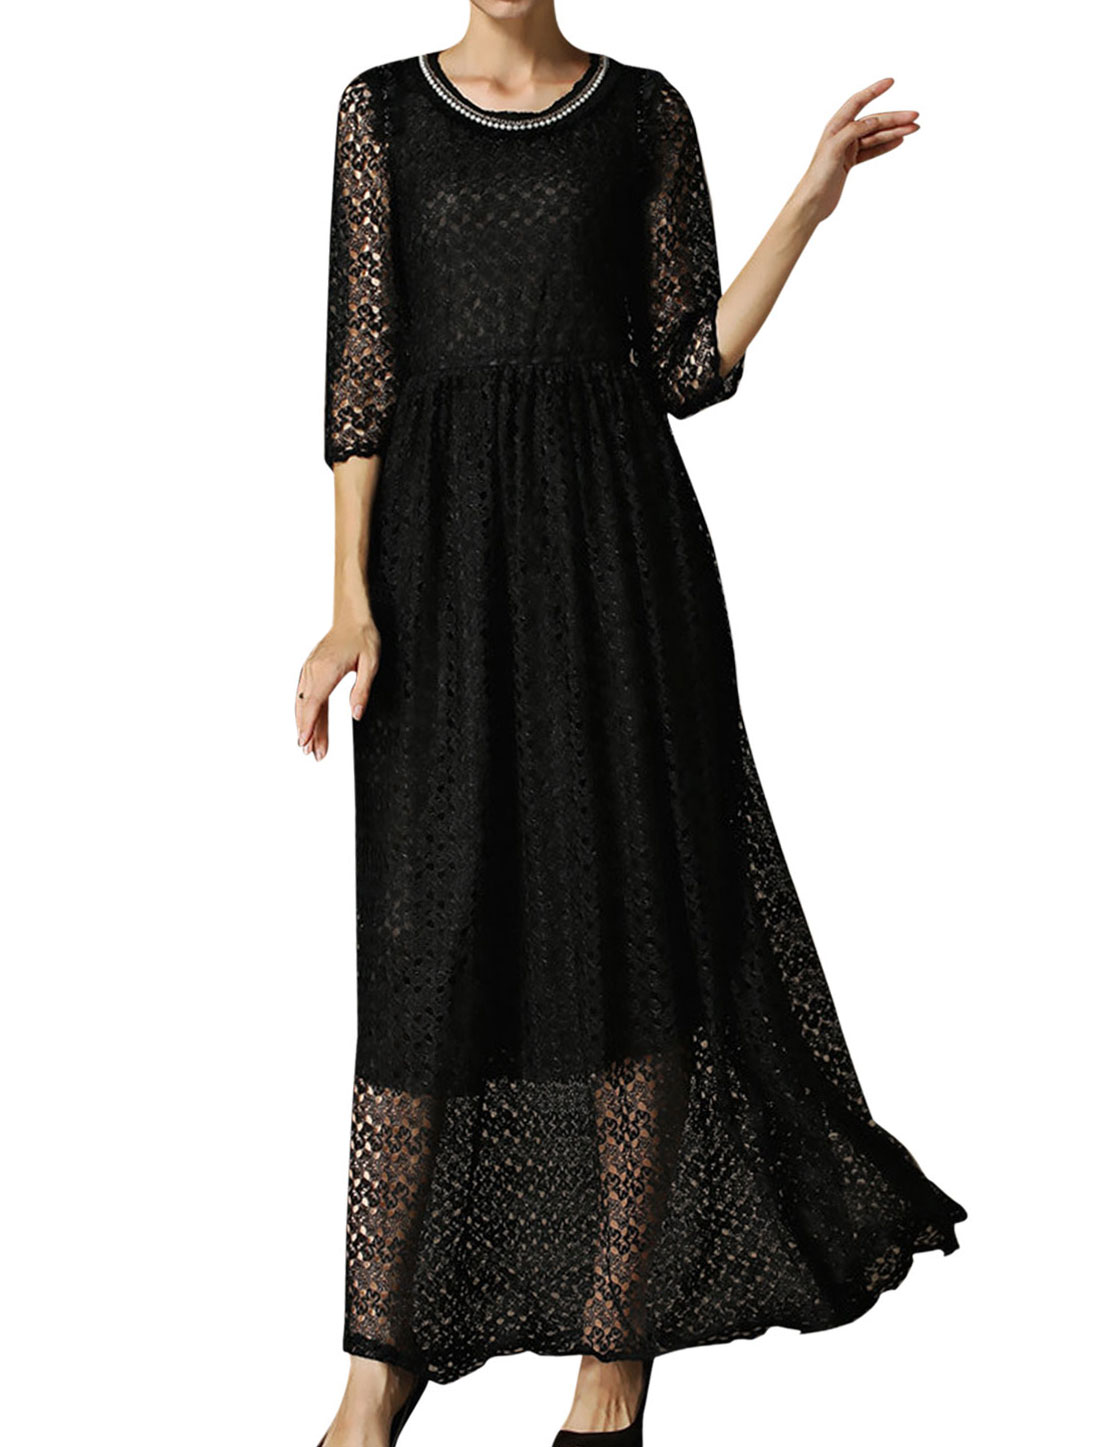 Lady Round Neck 3/4 Sleeve Crochet Elastic Waist Lined Long Dress Black M